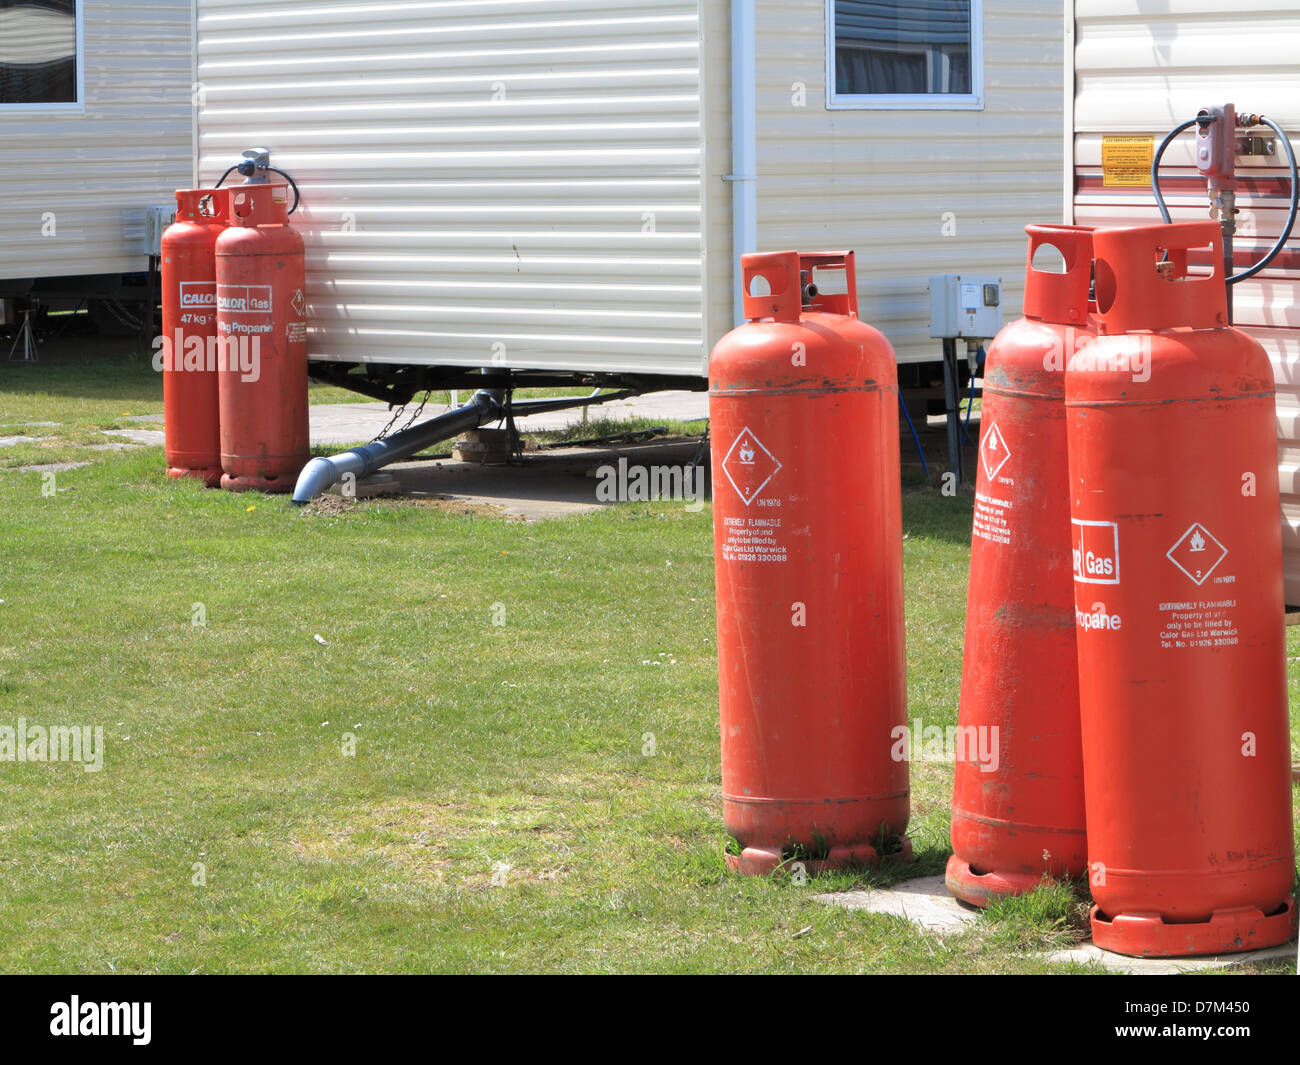 Propane gas cylinders on a caravan site - Stock Image